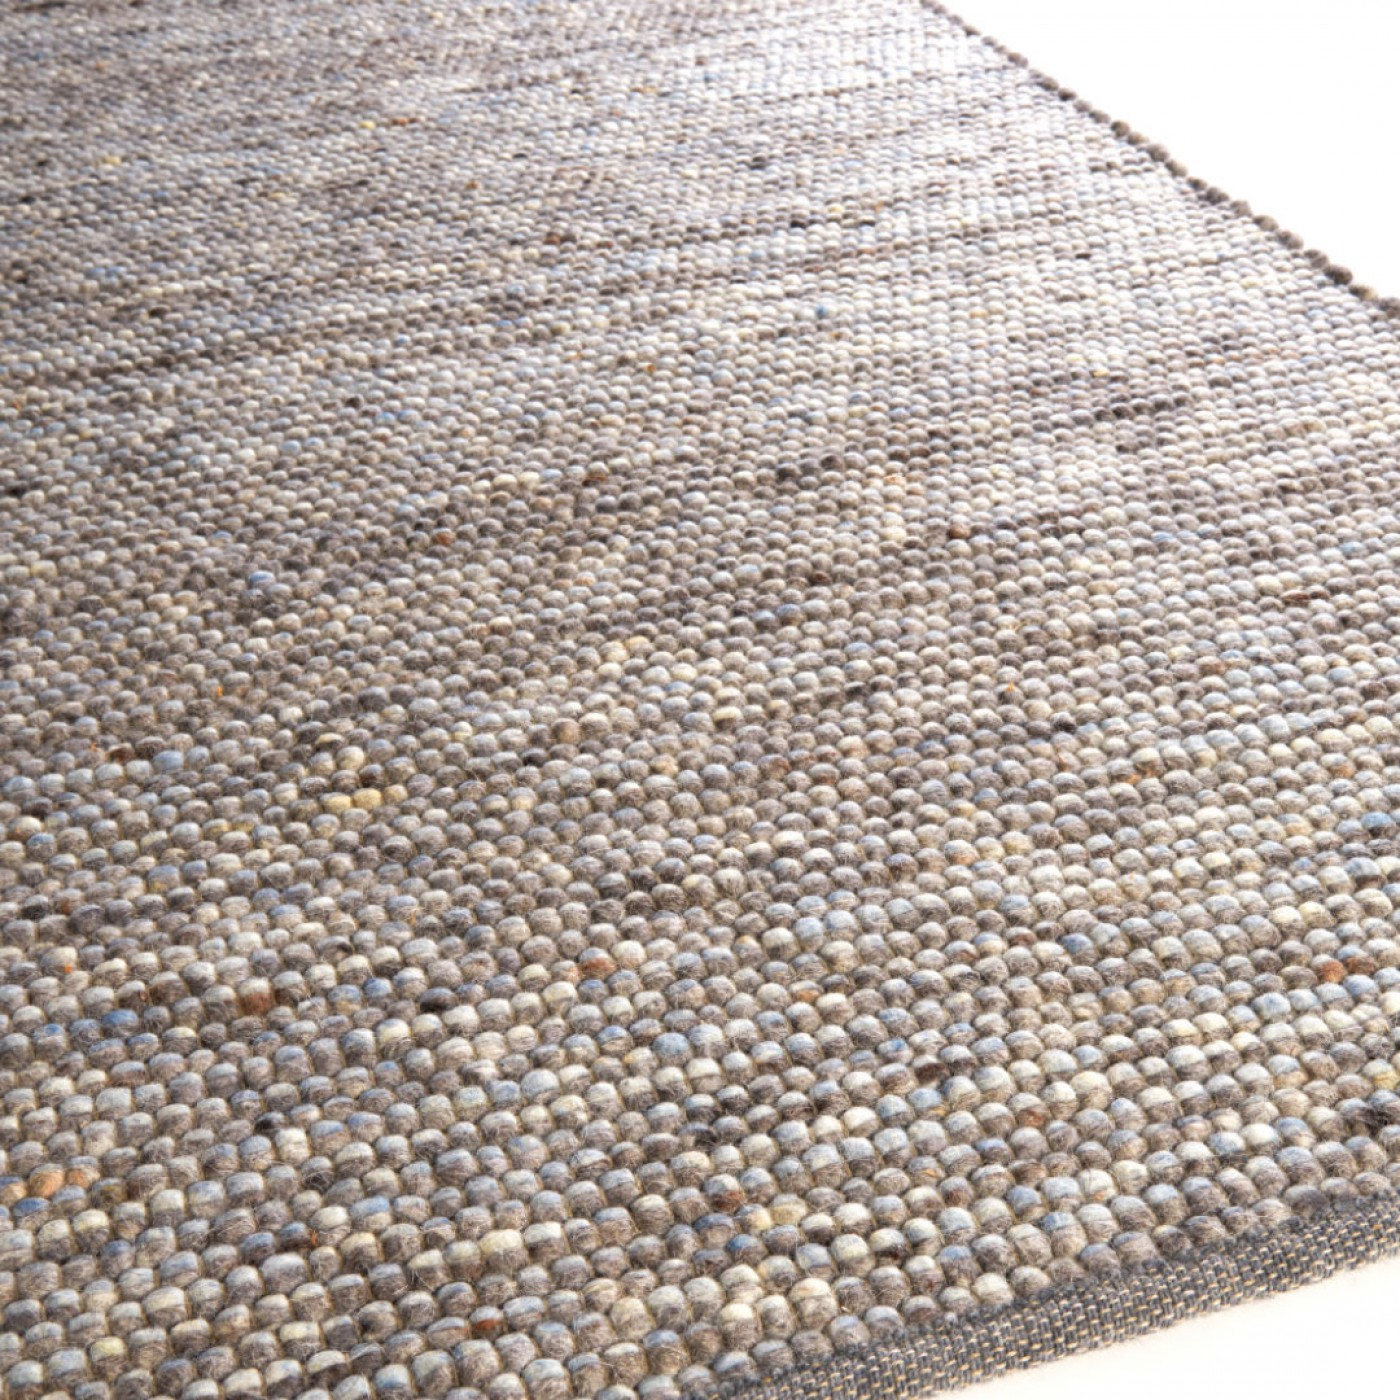 vloerkleed cliff brinker carpets 508